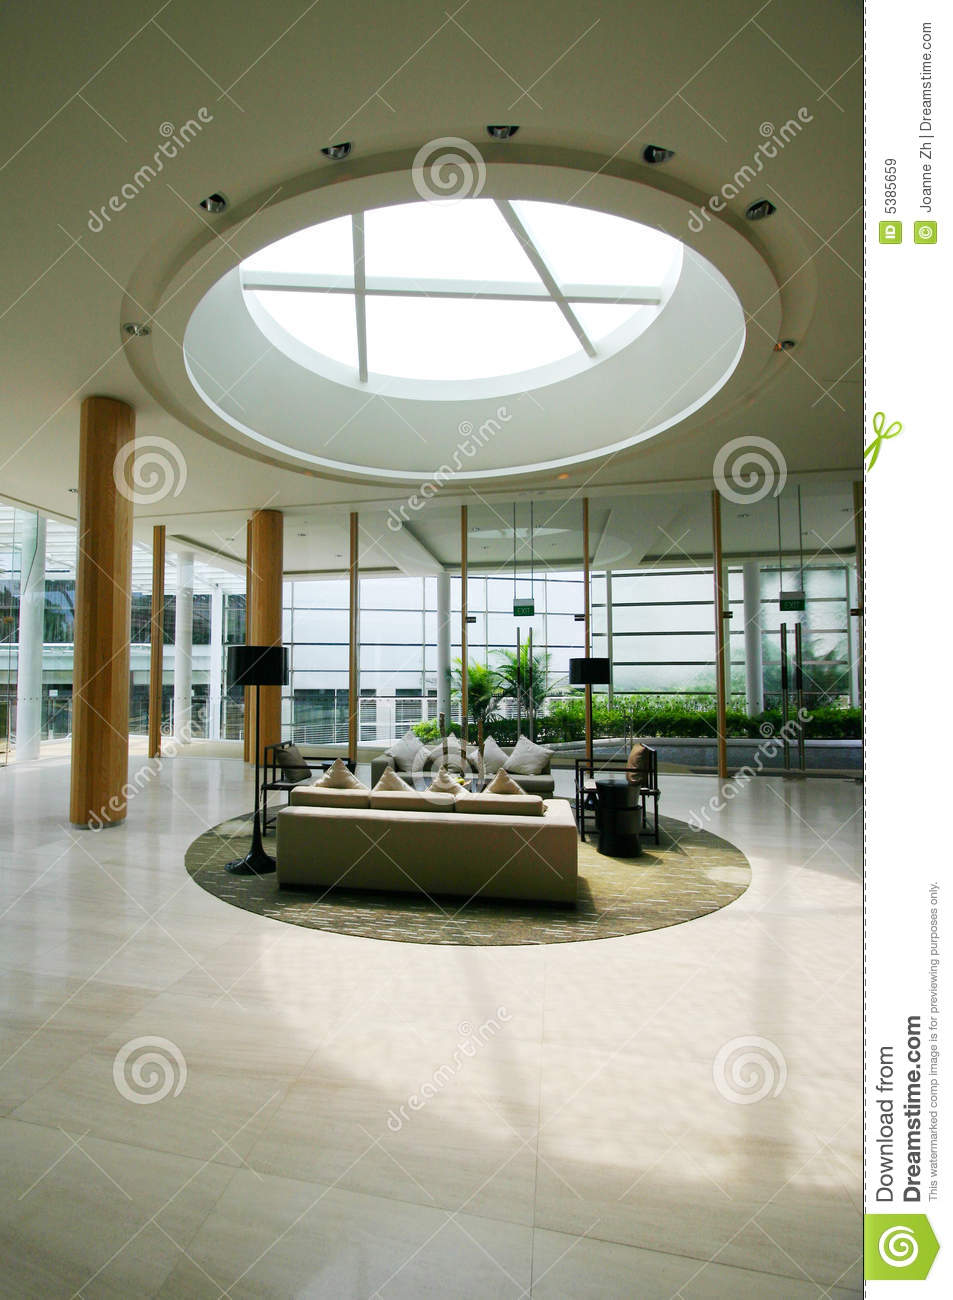 Foyer Hotel : Modern holiday resorts foyer interior stock image